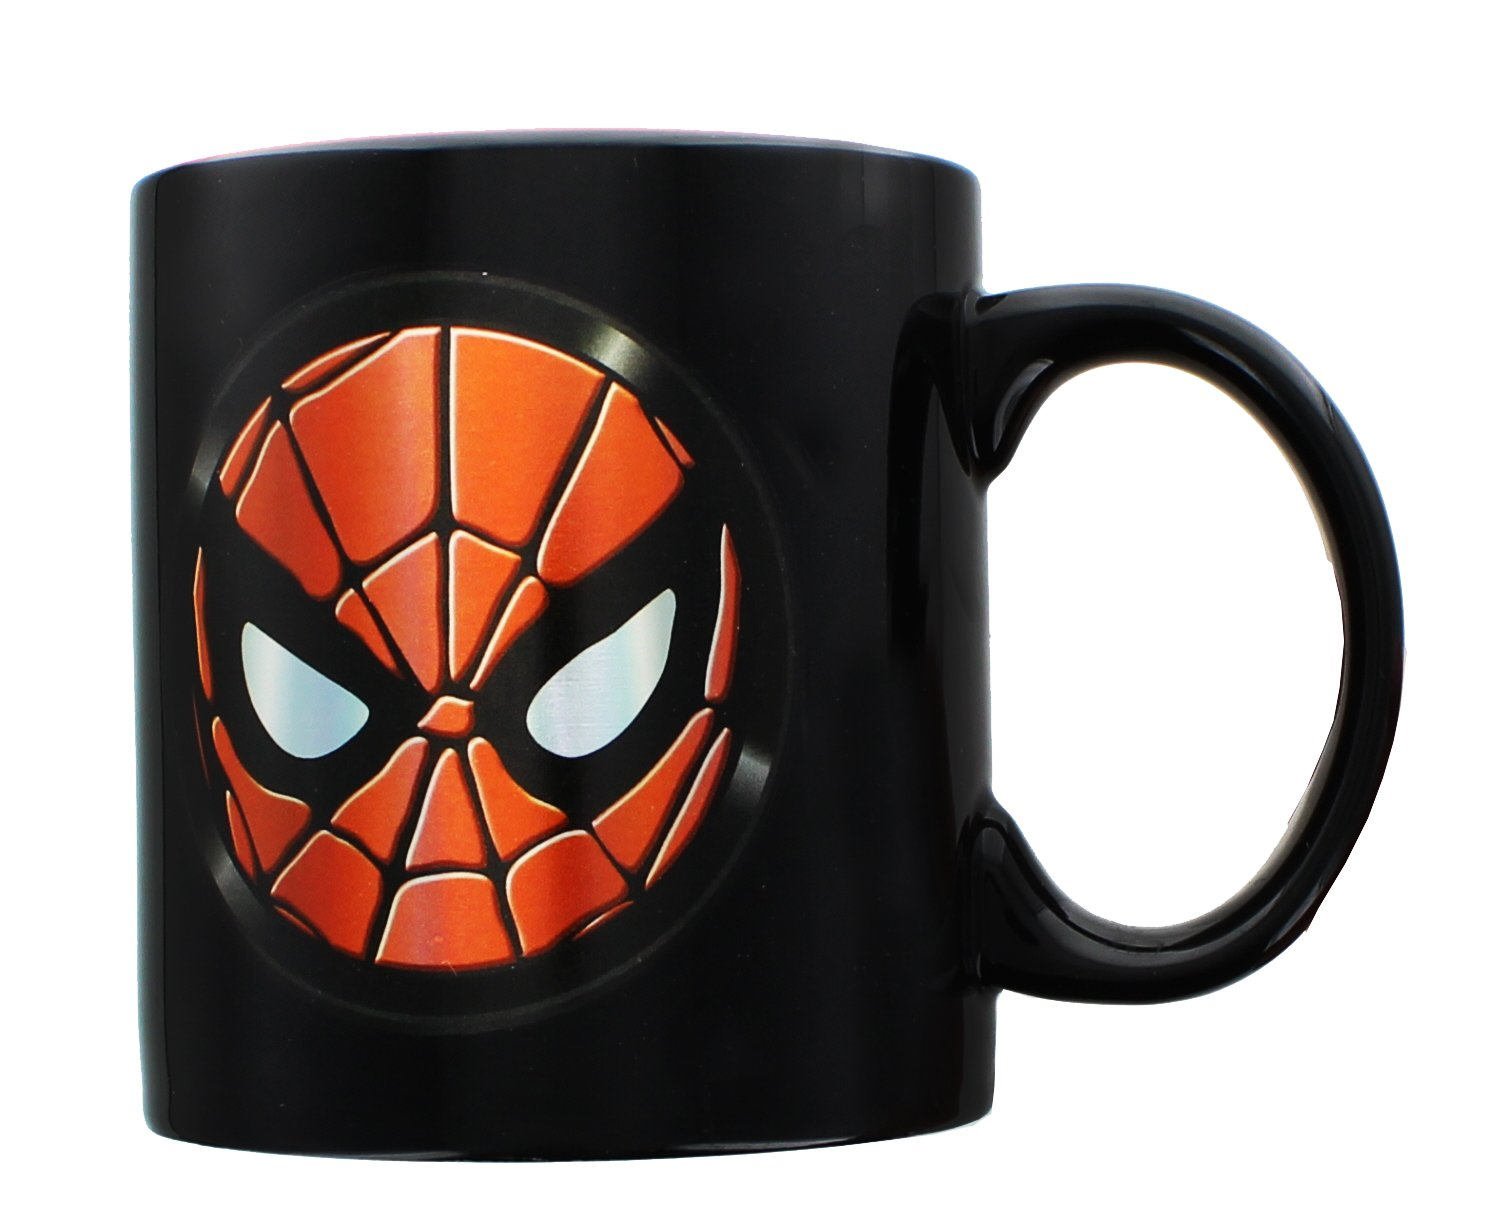 ICUP Marvel Spiderman Icon Iridescent Ceramic Mug, 20 oz, Clear by ICUP (Image #1)